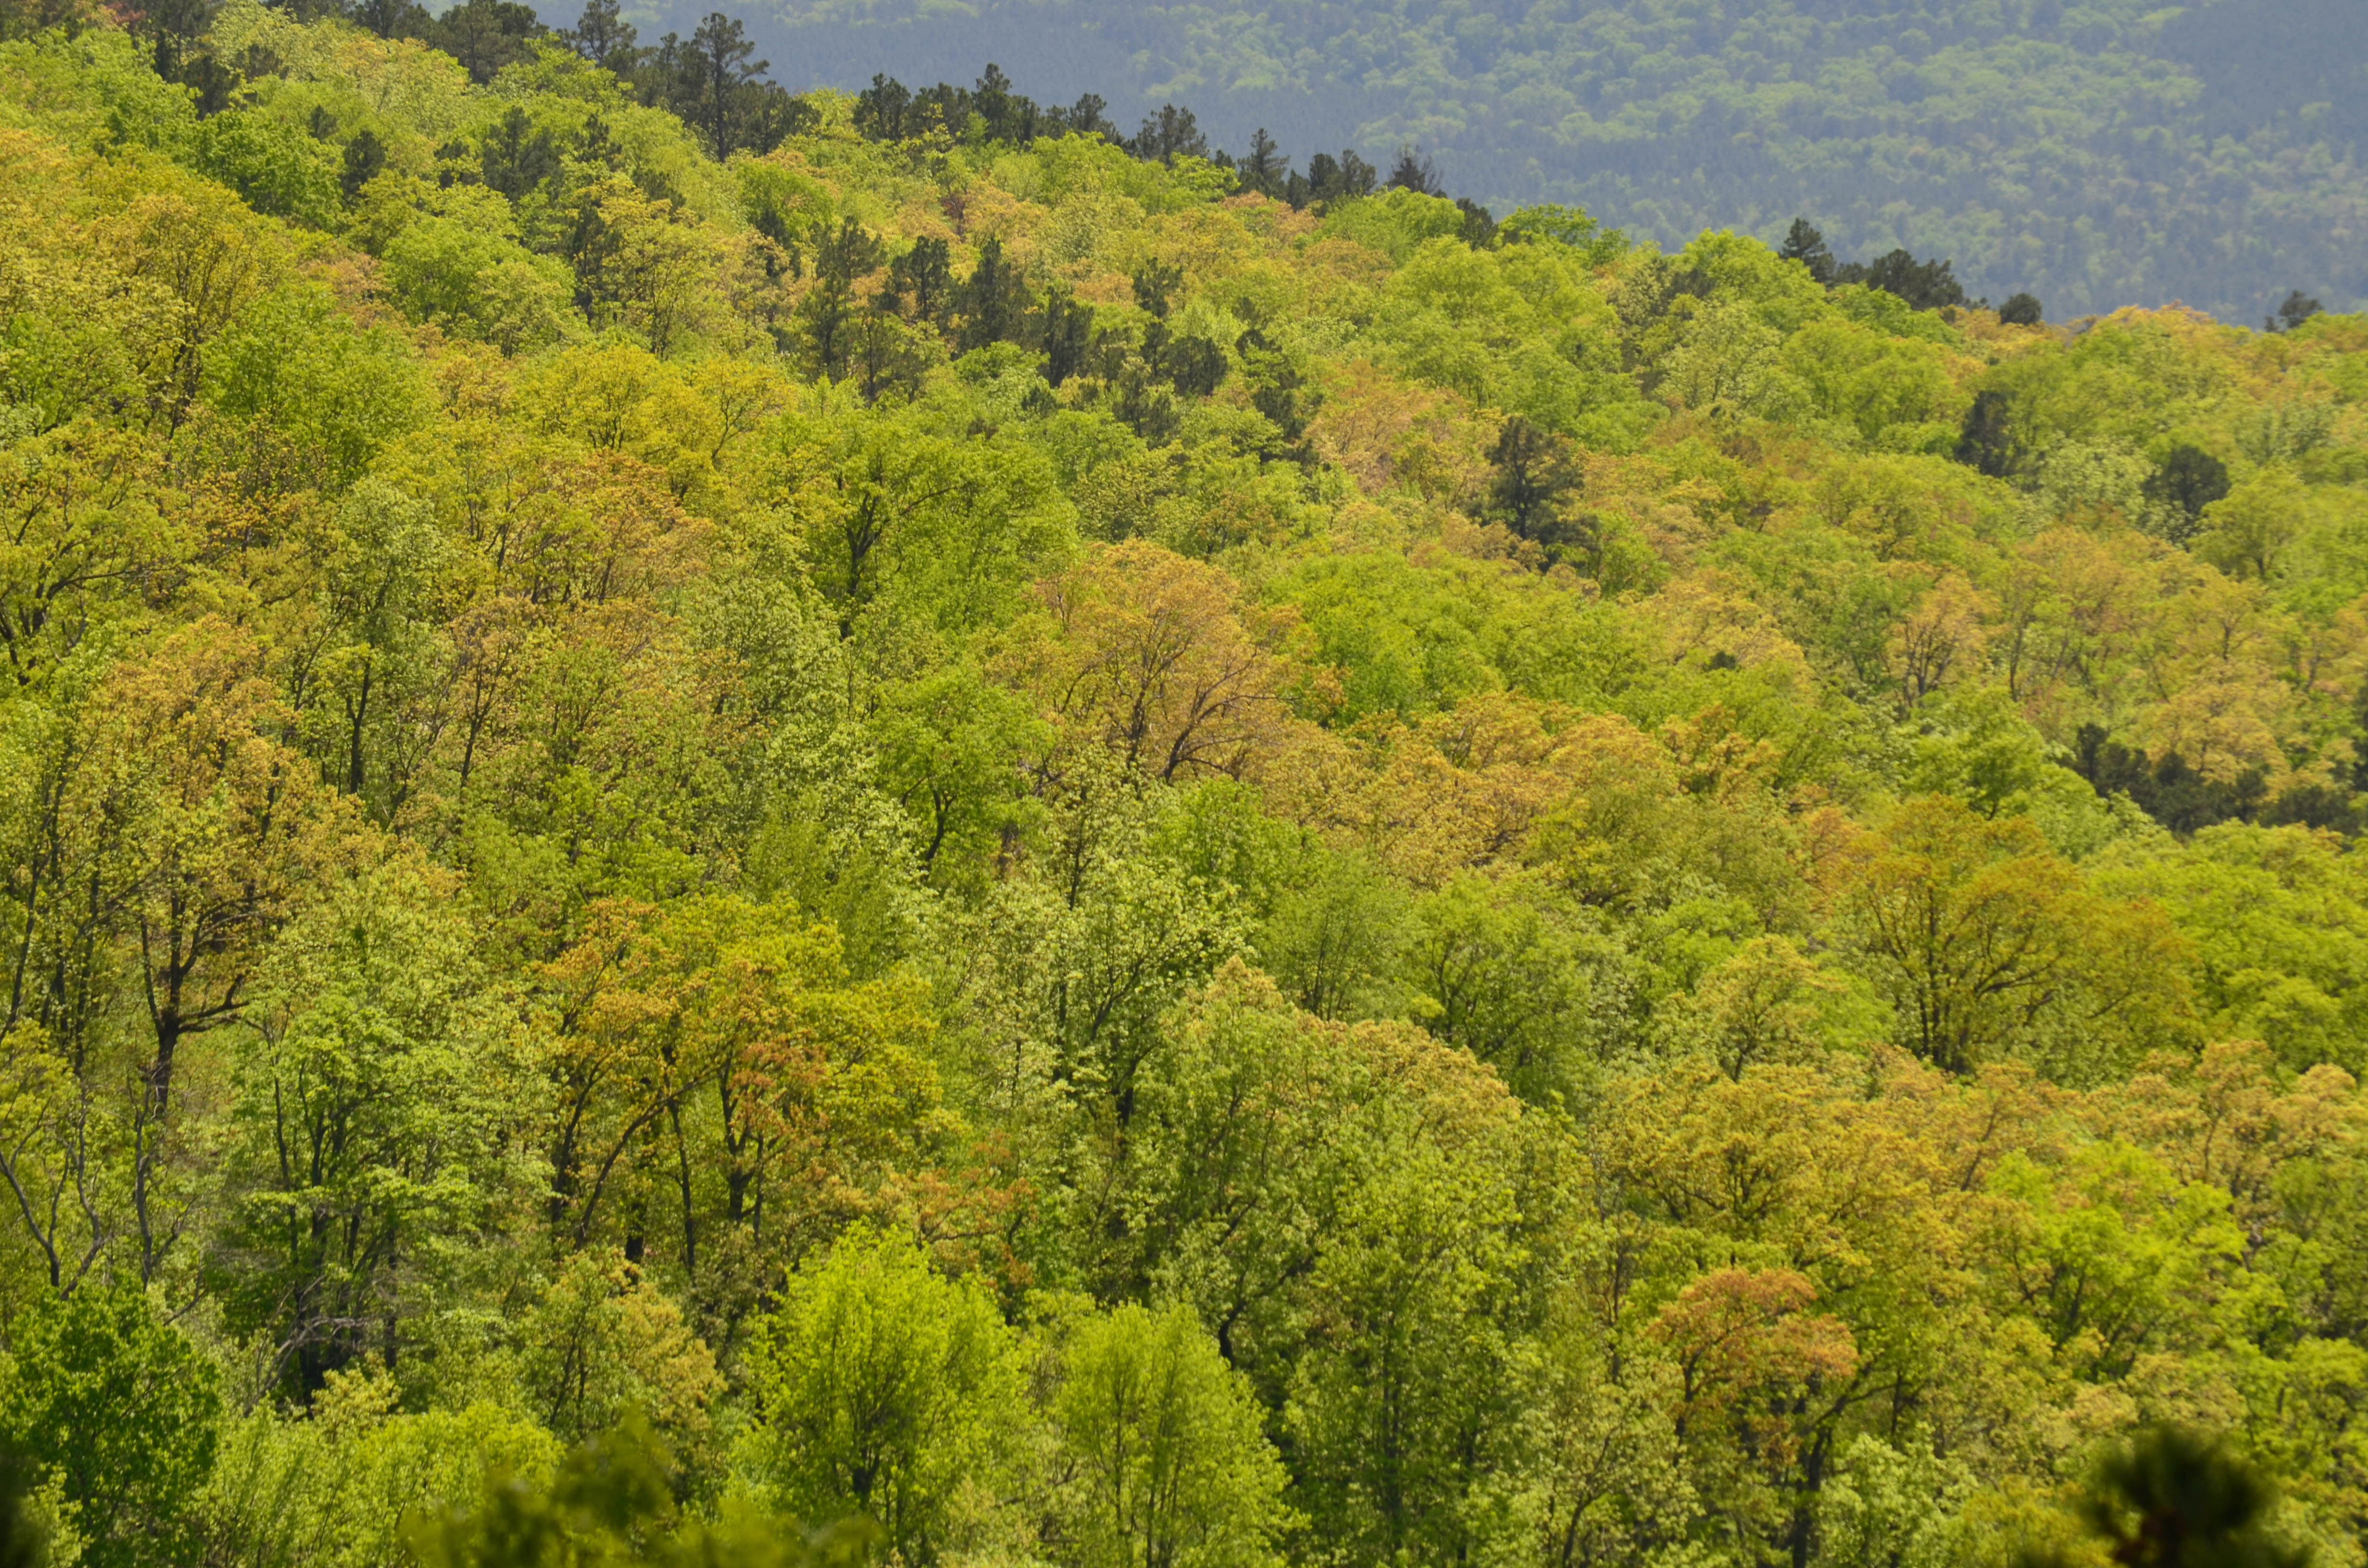 Forests in Arkansas' Ozark mountains tend to be a mixture of deciduous and conifer trees. Species compositions could change in the future.